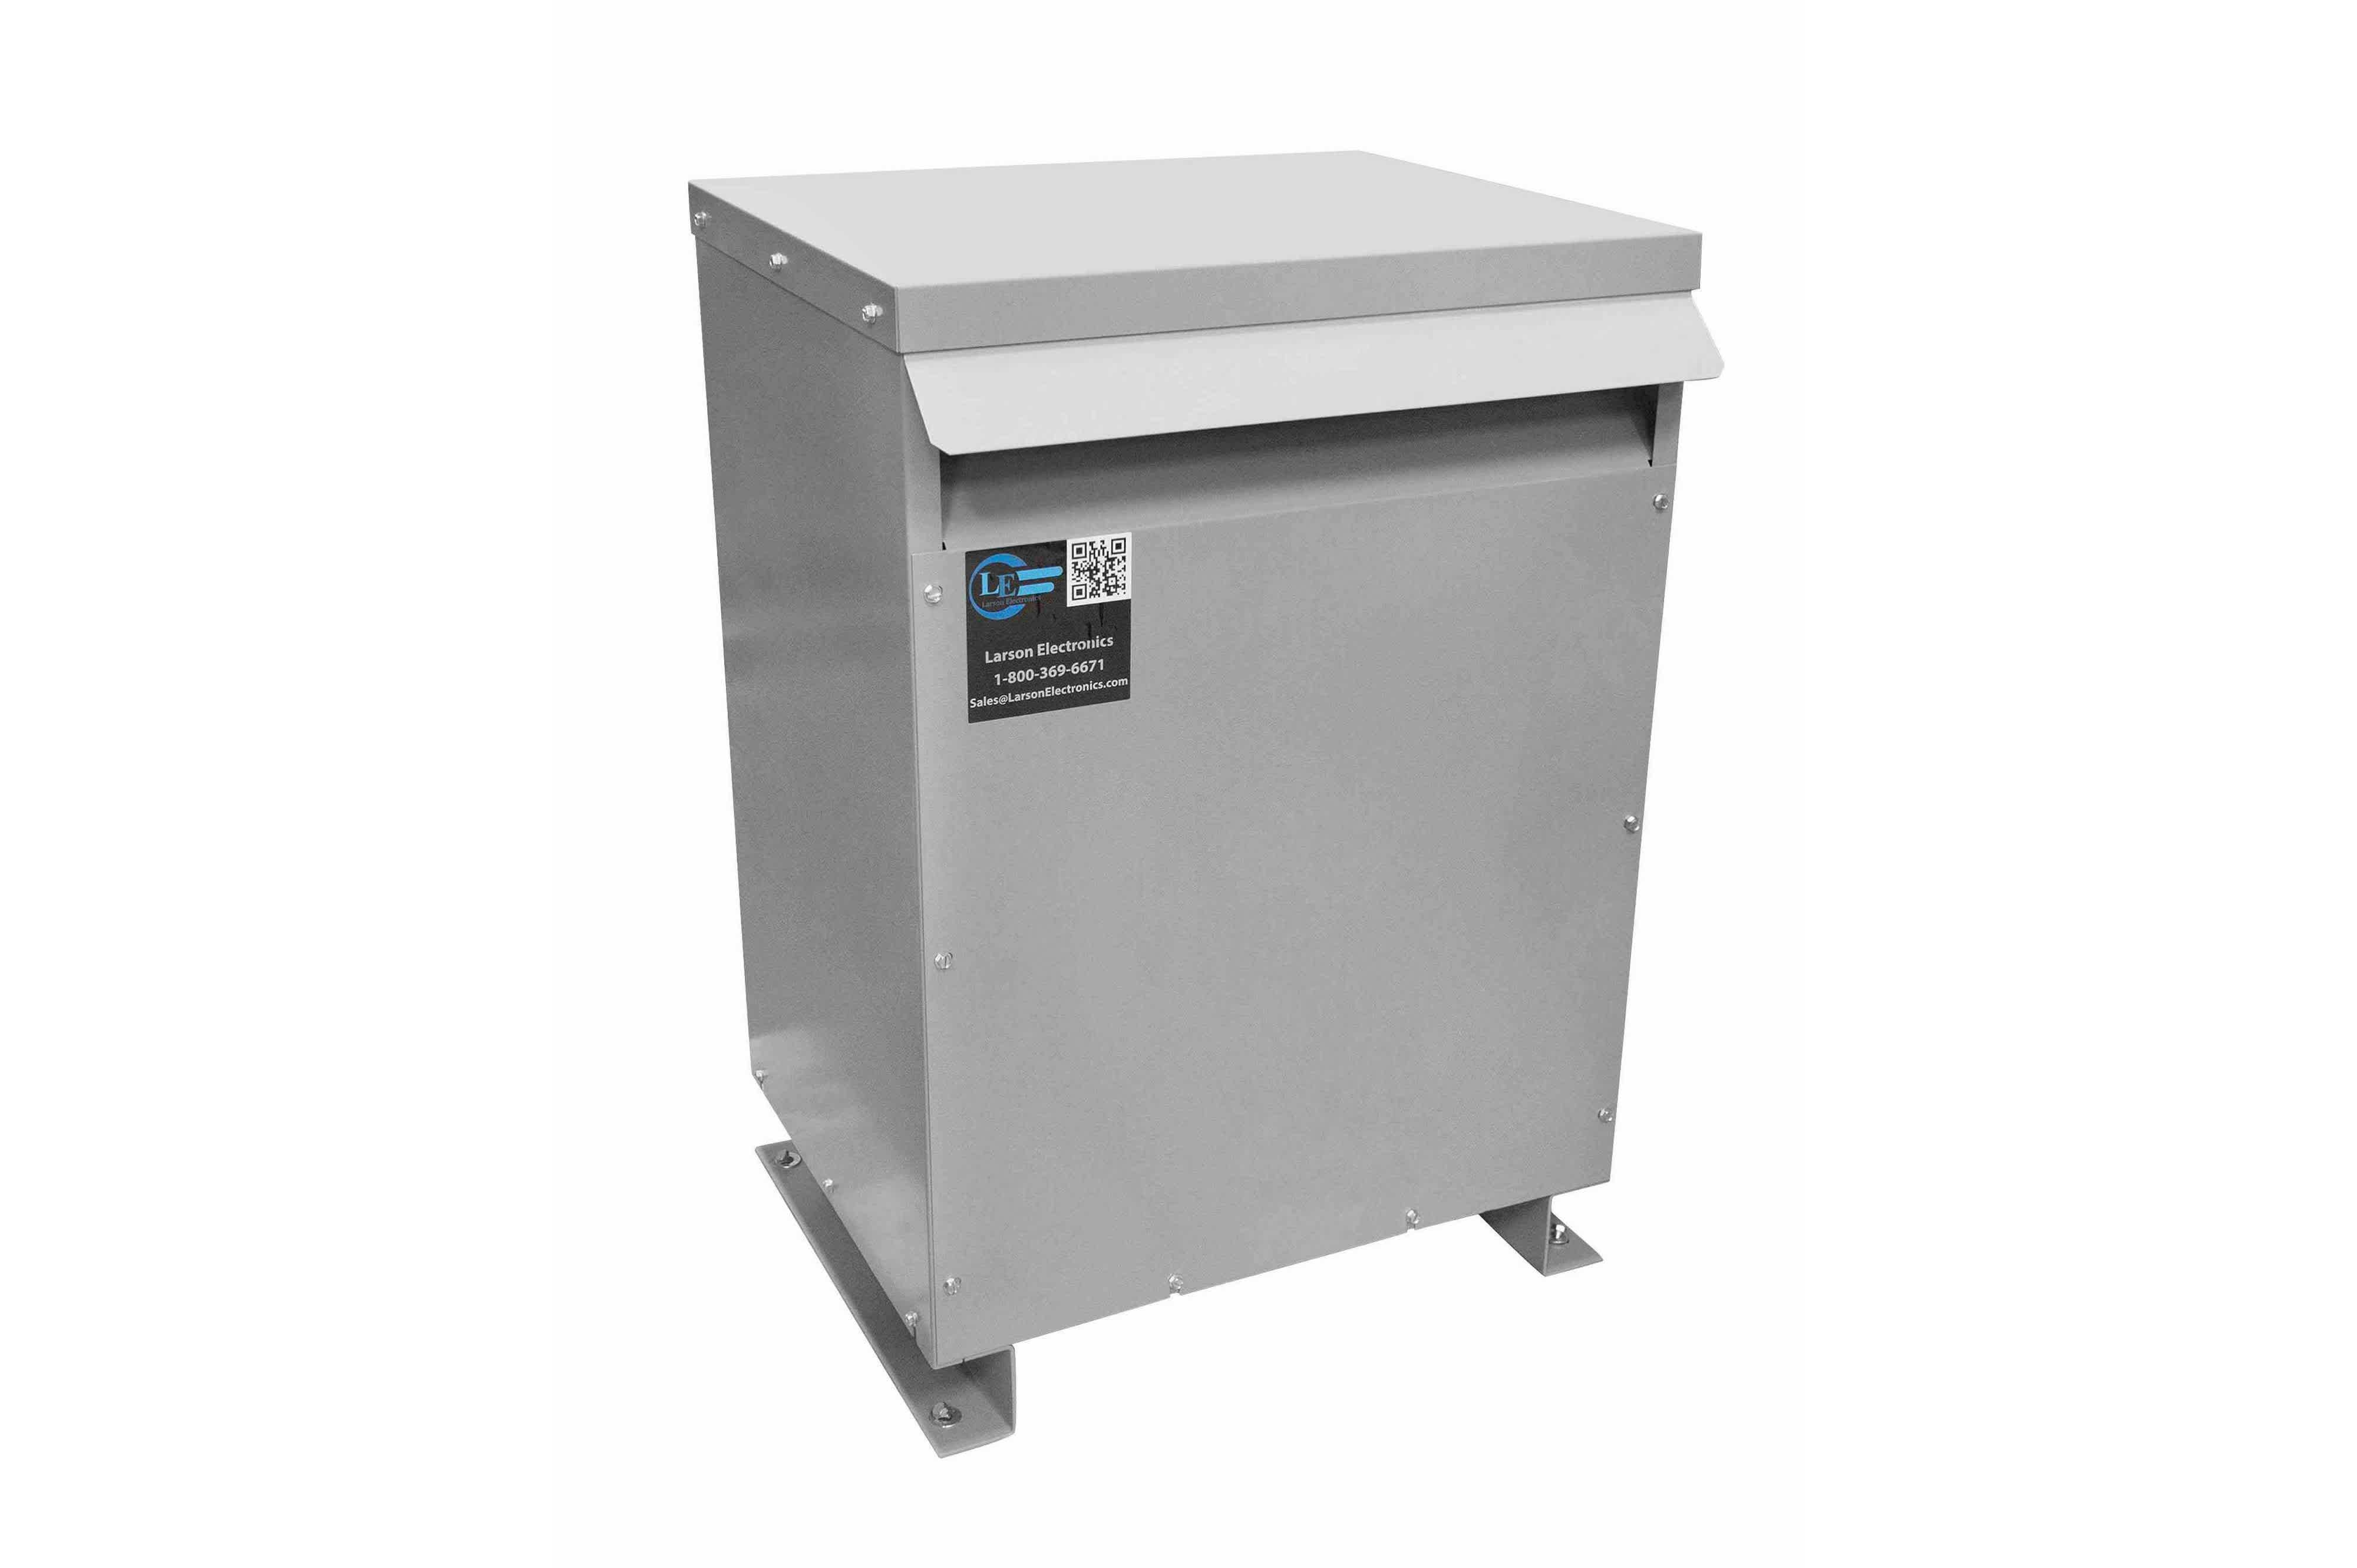 237.5 kVA 3PH Isolation Transformer, 480V Wye Primary, 480Y/277 Wye-N Secondary, N3R, Ventilated, 60 Hz